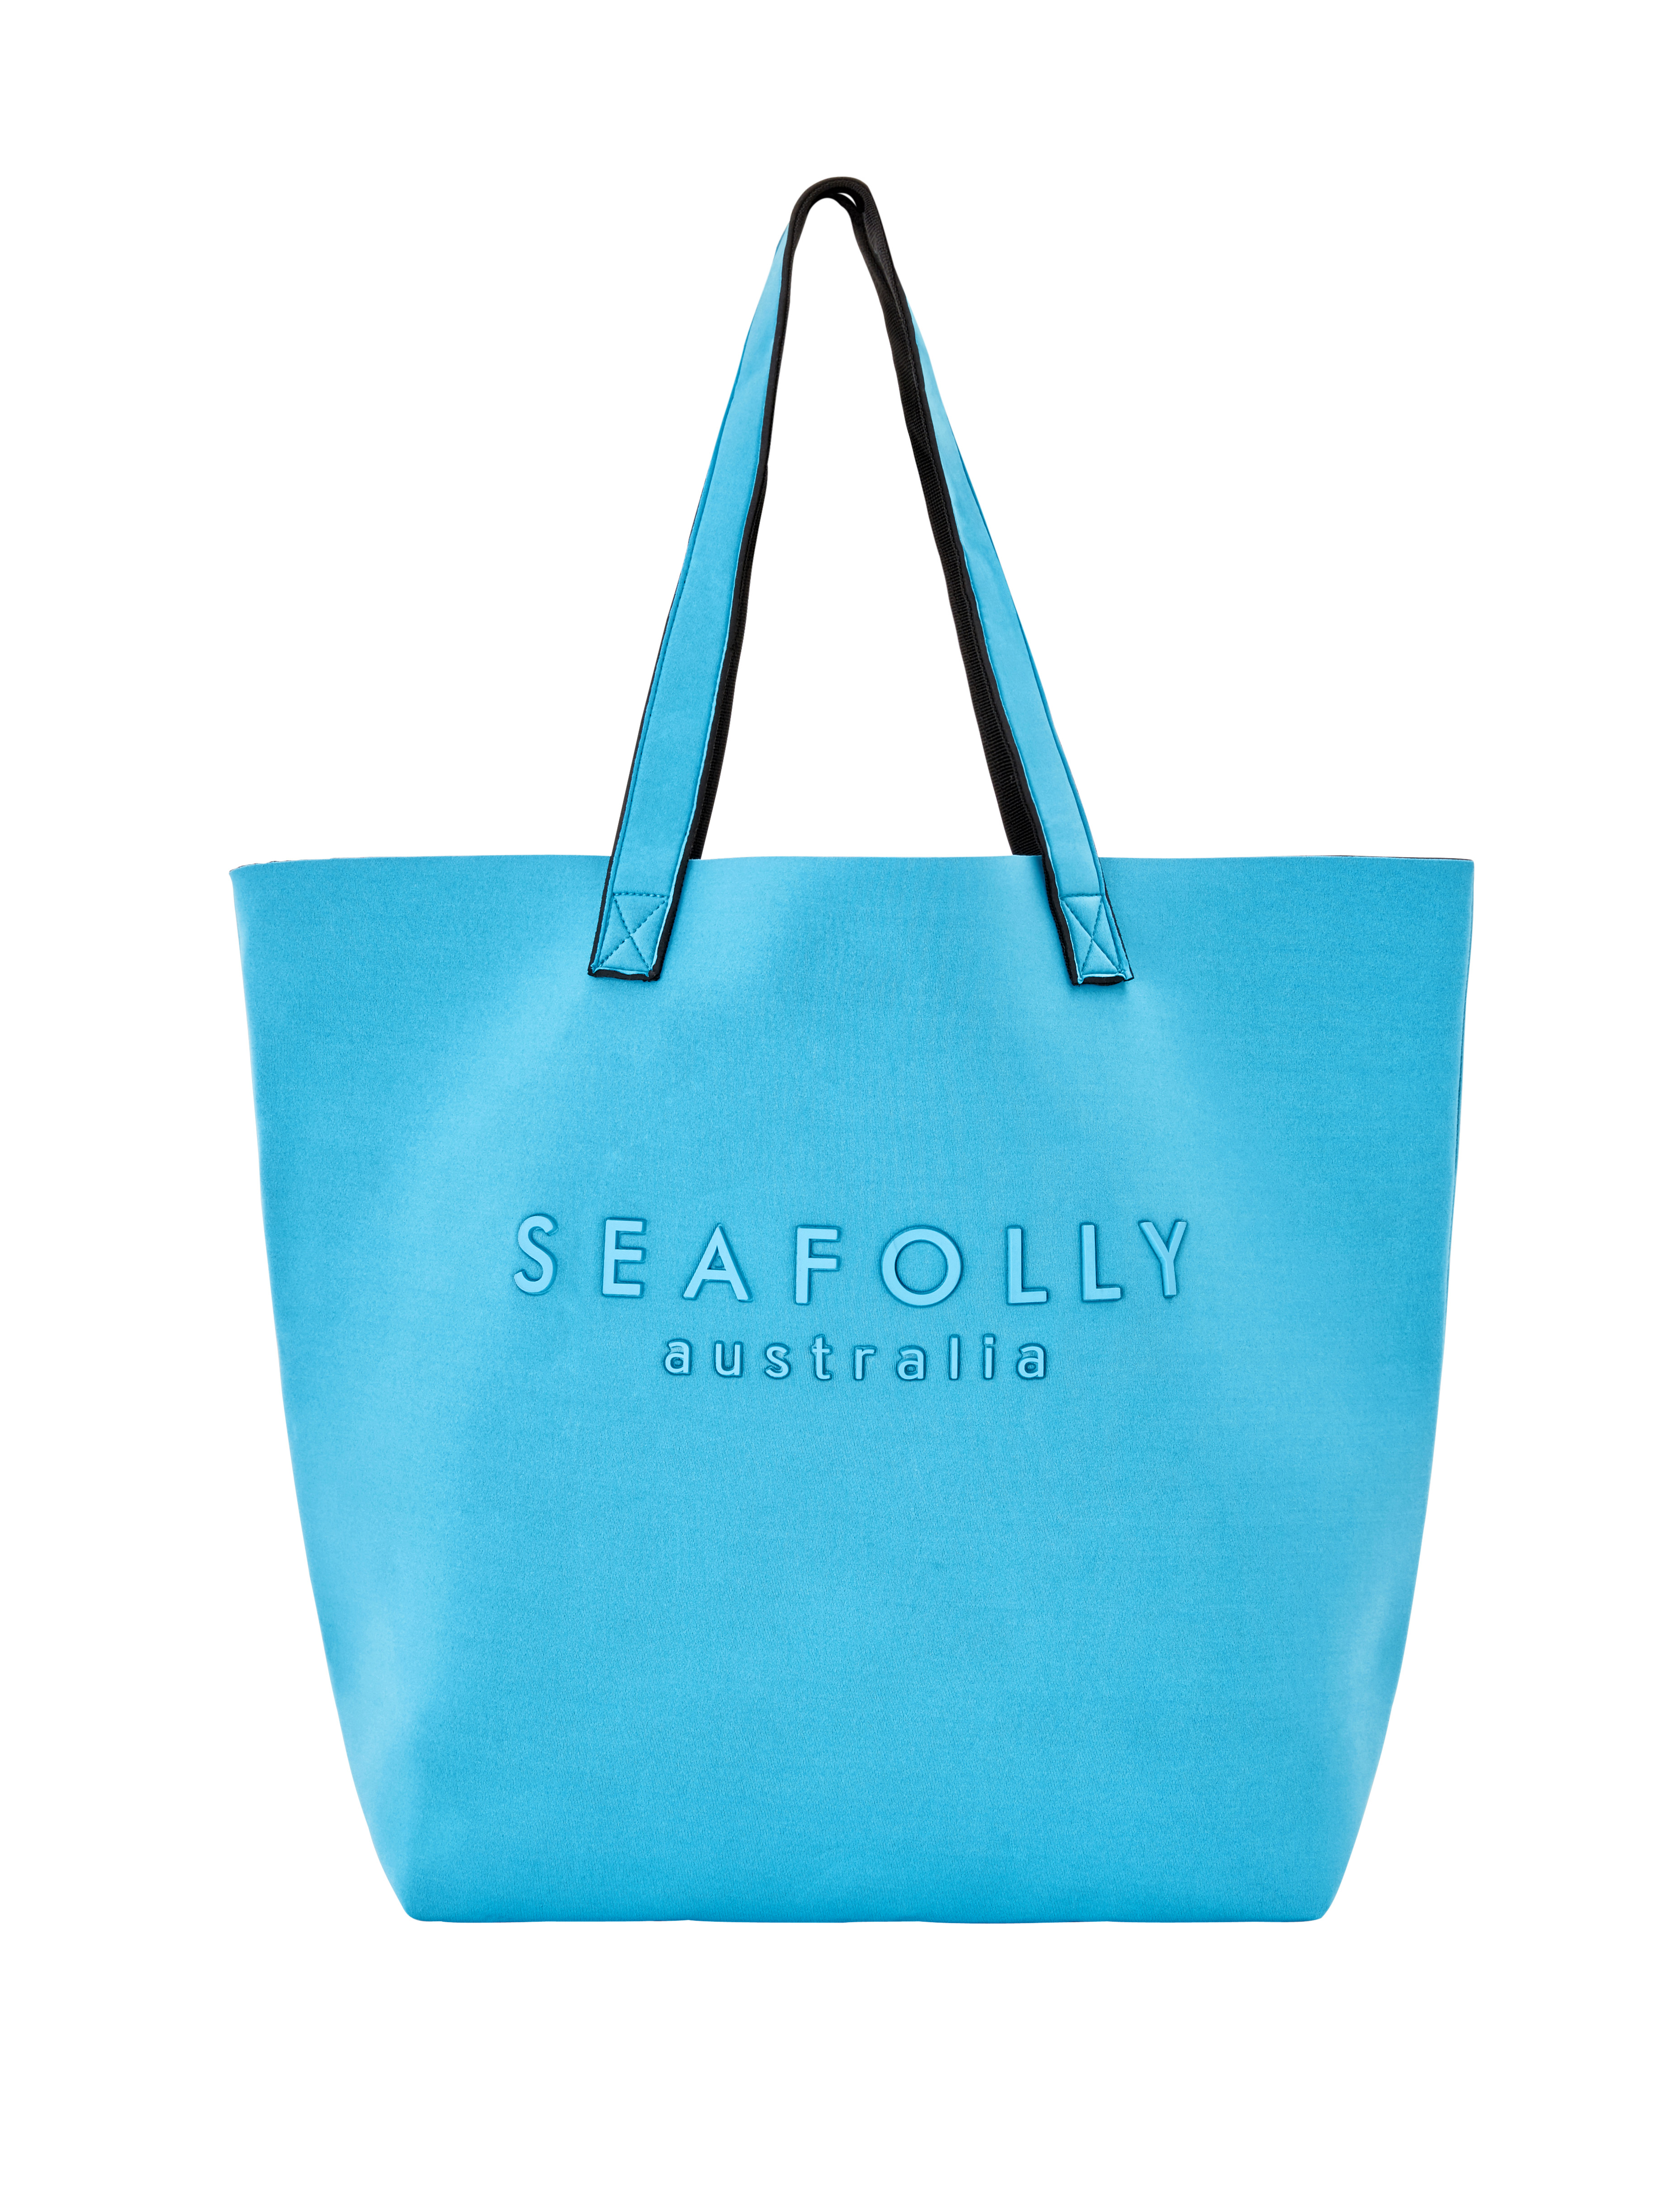 Seafolly Luxe Tote - Bluemist